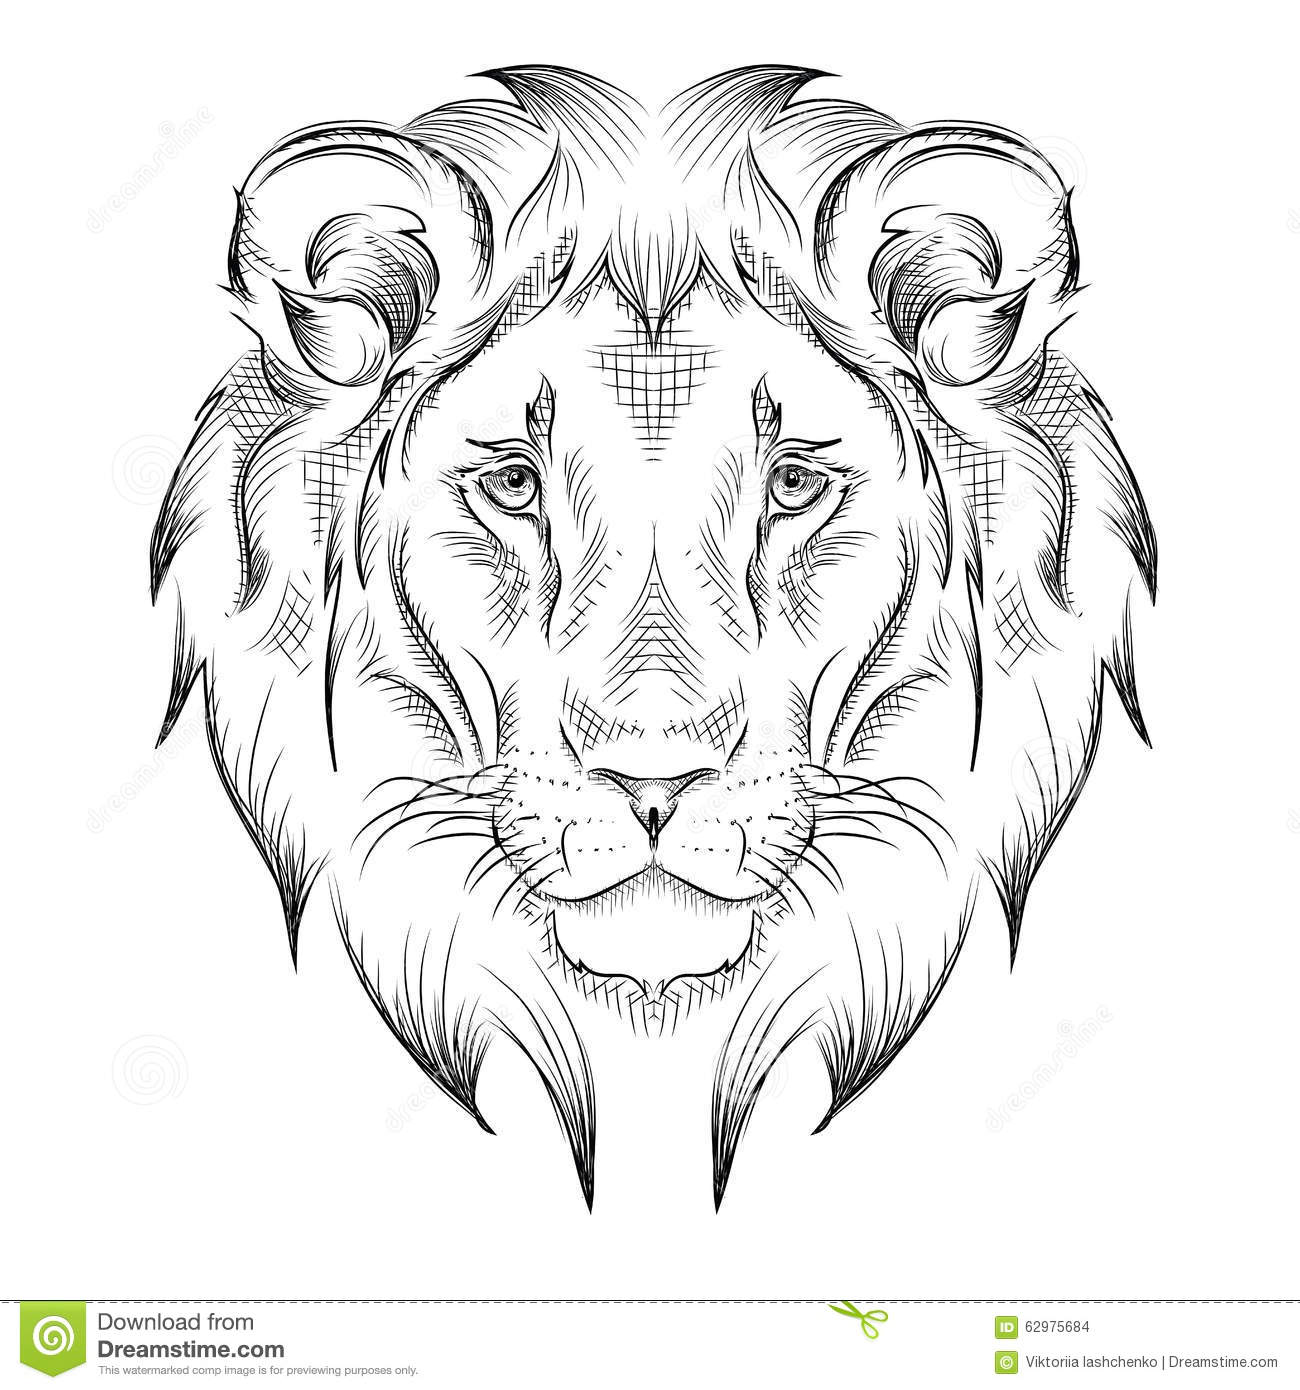 t te de dessin ethnique de main de lion conception de totem tatouage utilisation pour la copie. Black Bedroom Furniture Sets. Home Design Ideas